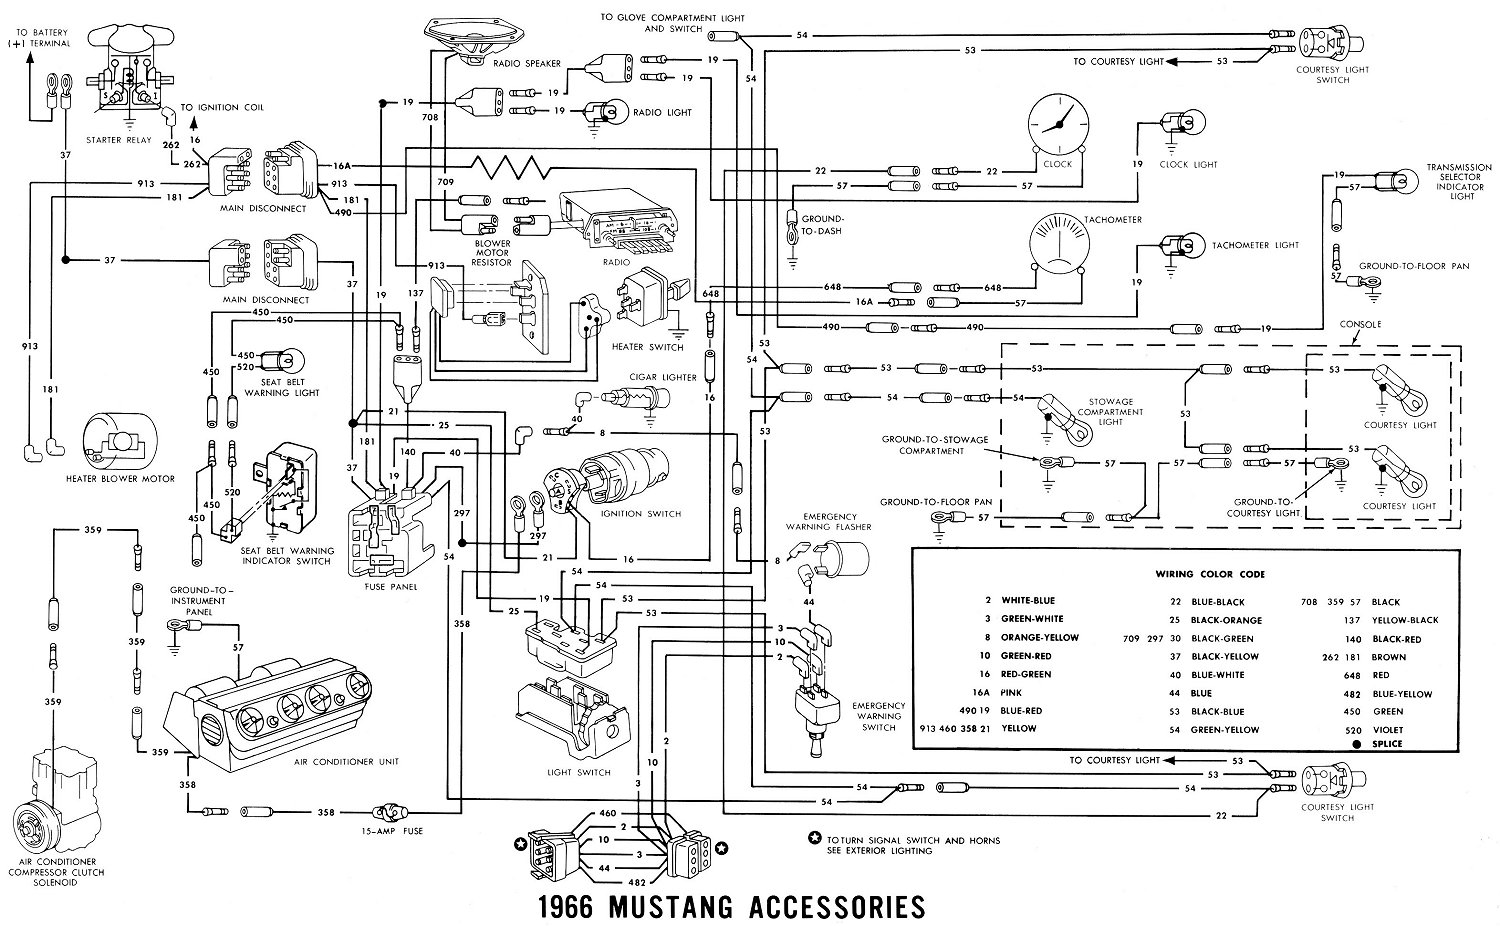 66acces1 1966 mustang wiring diagrams average joe restoration 1969 Ford F100 Steering Column Wiring Diagram at gsmportal.co